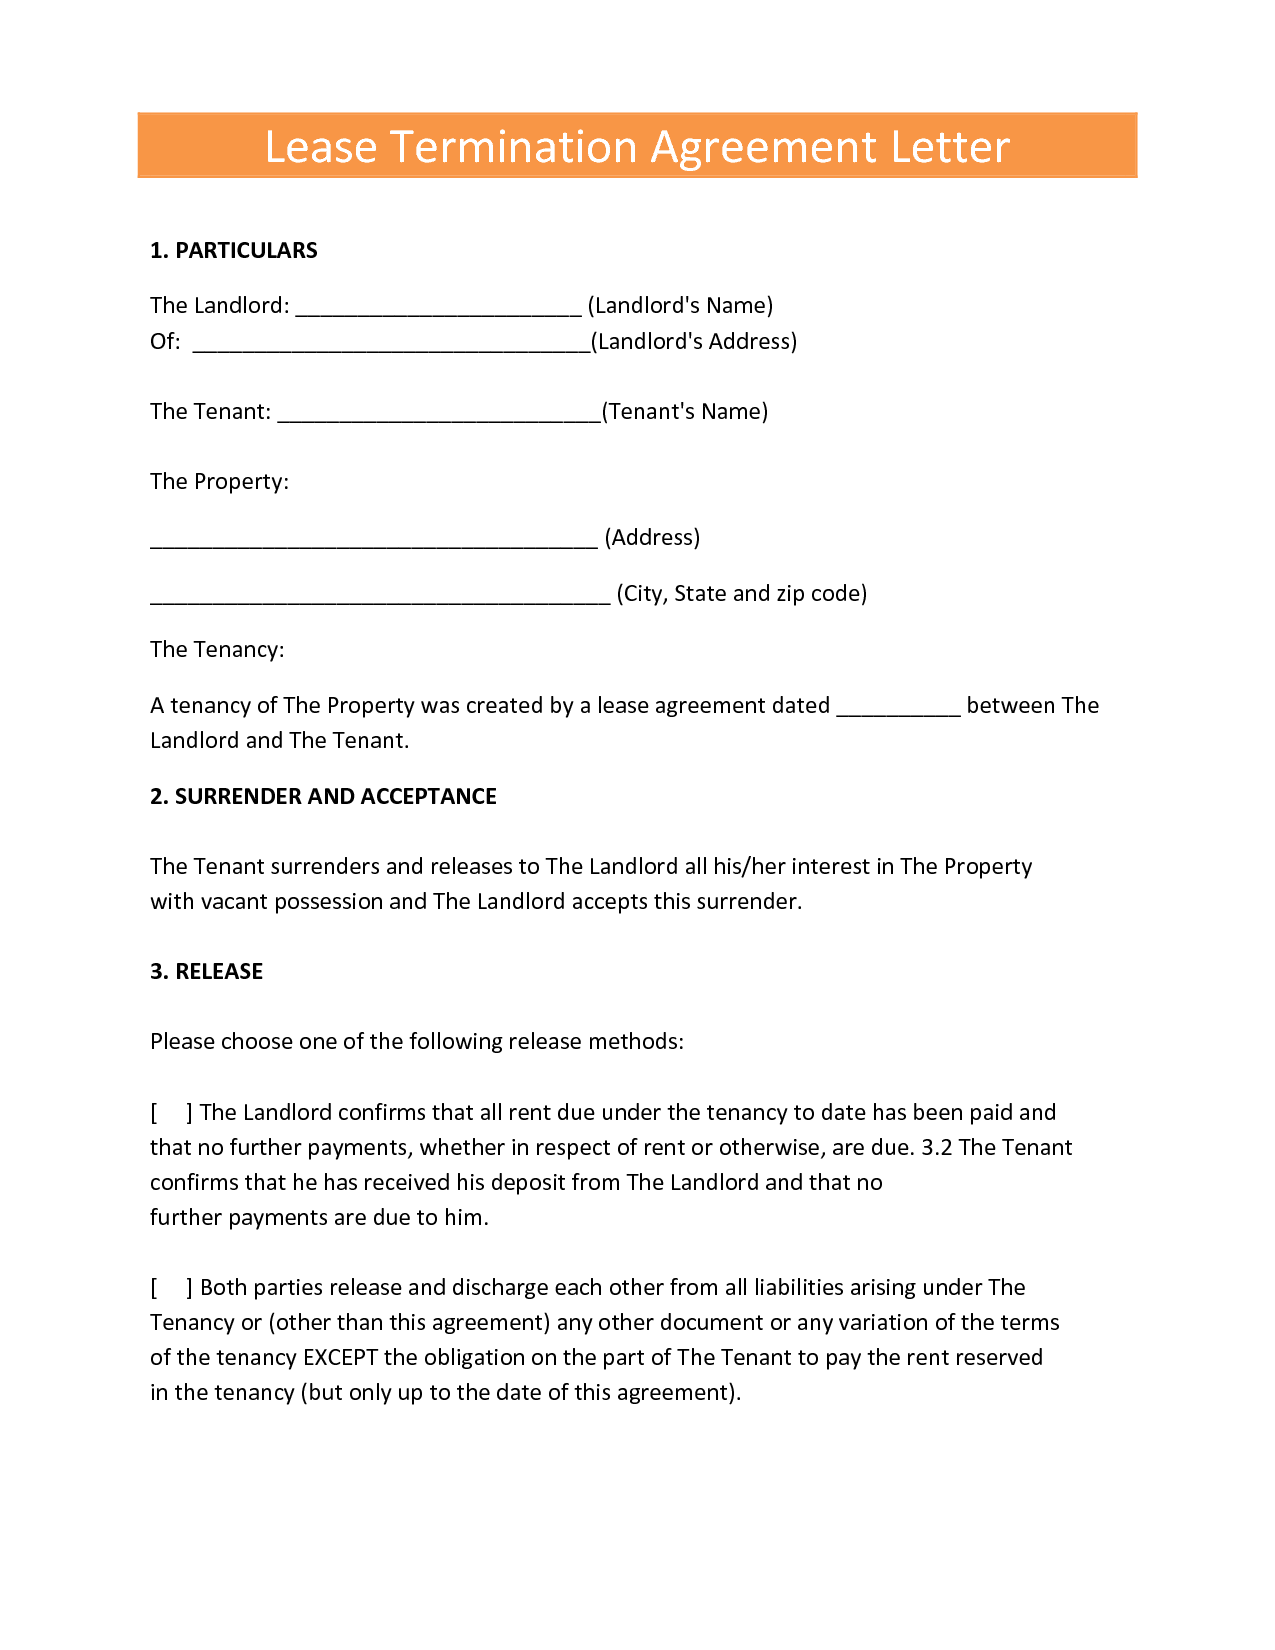 lease termination agreement letter by elfir61807 - Termination Letter For Tenant From Landlord